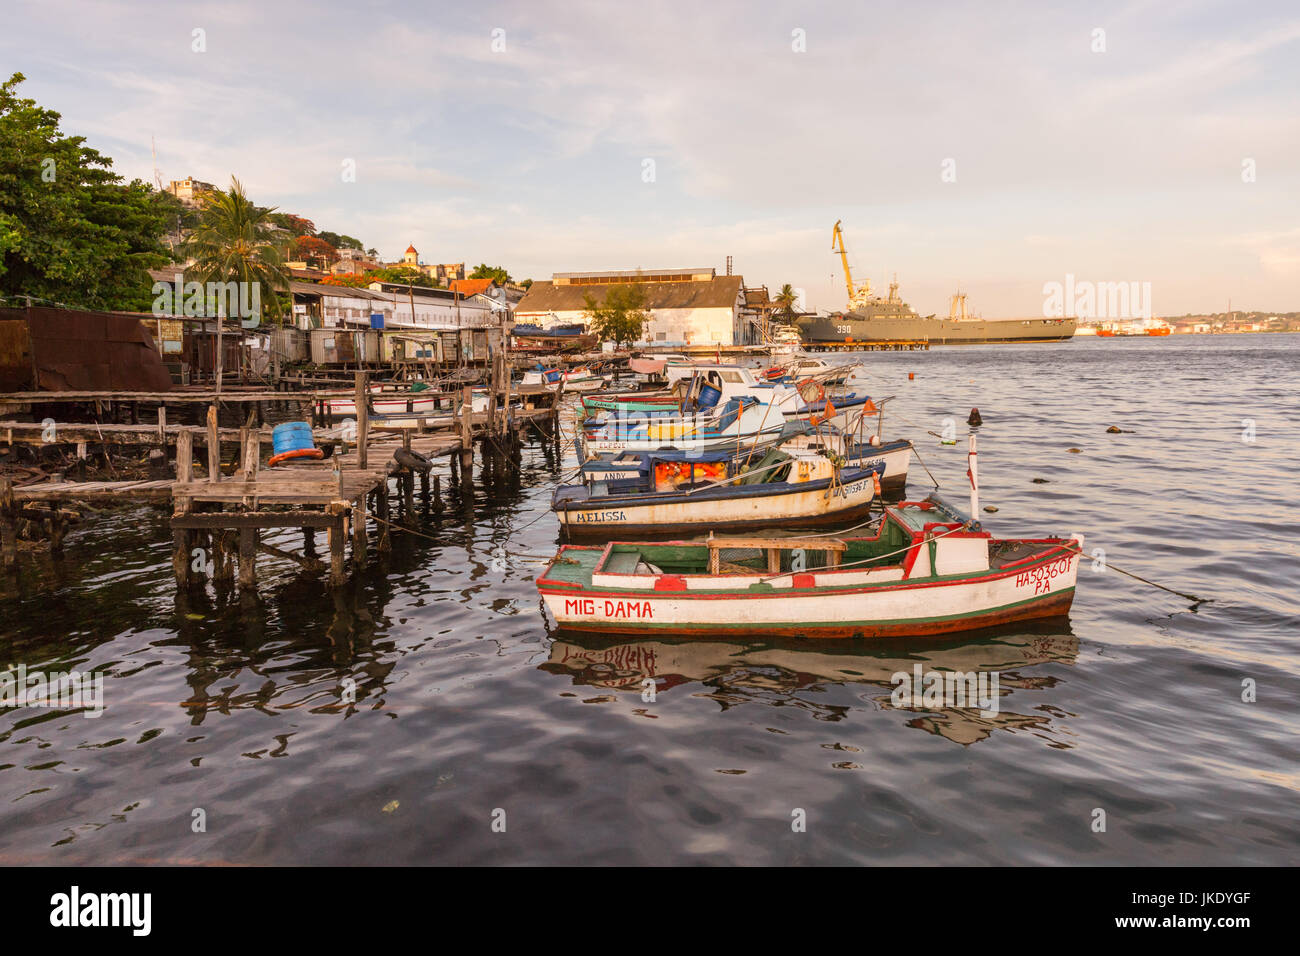 Fishing boats and Cuban navy military ship in Casa Blanca, Havana, Cuba - Stock Image